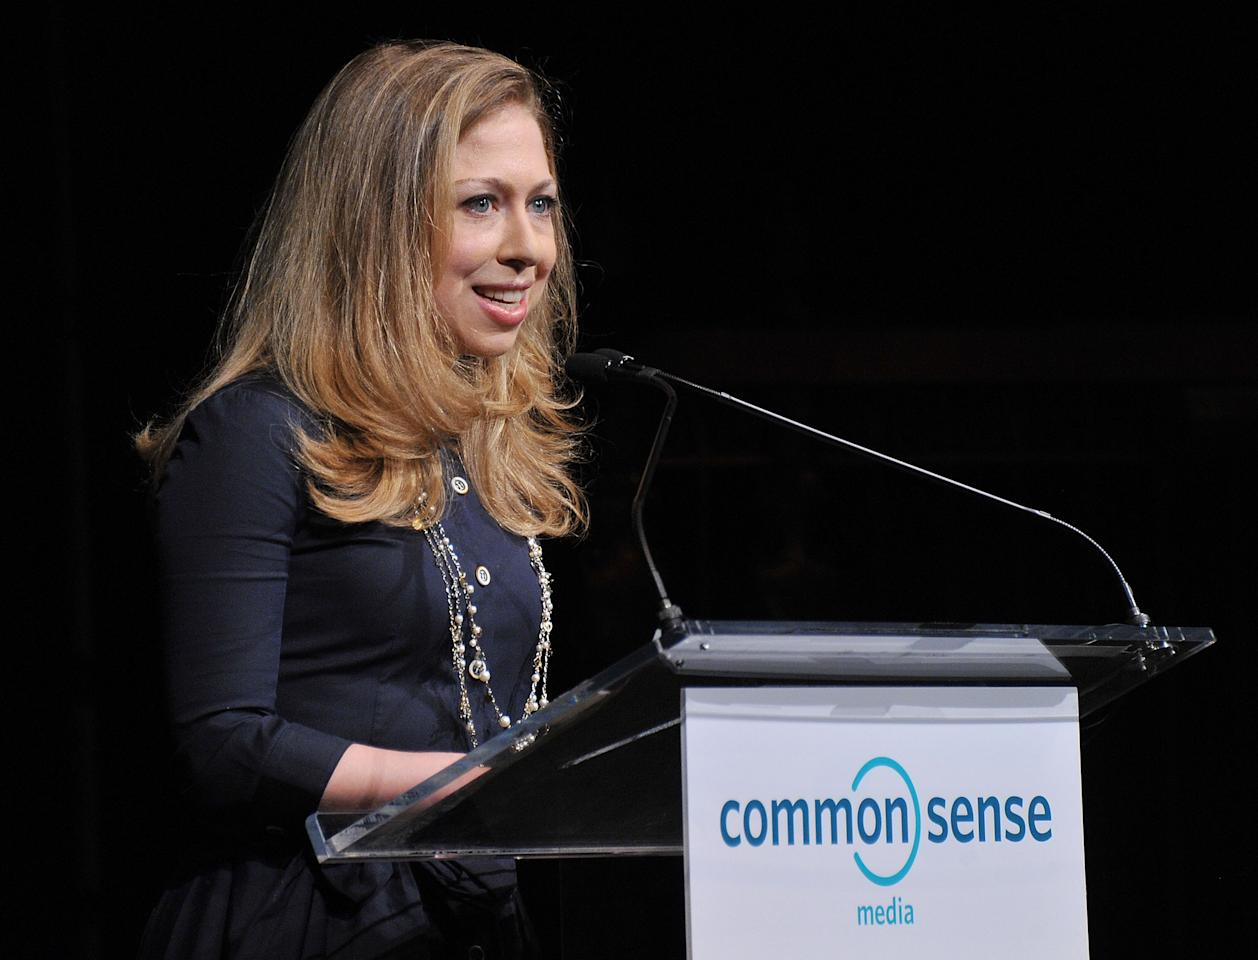 NEW YORK, NY - APRIL 28:  Chelsea Clinton speaks at the 7th Annual Common Sense Media Awards honoring Bill Clinton at Gotham Hall on April 28, 2011 in New York City.  (Photo by Stephen Lovekin/Getty Images for Common Sense Media)